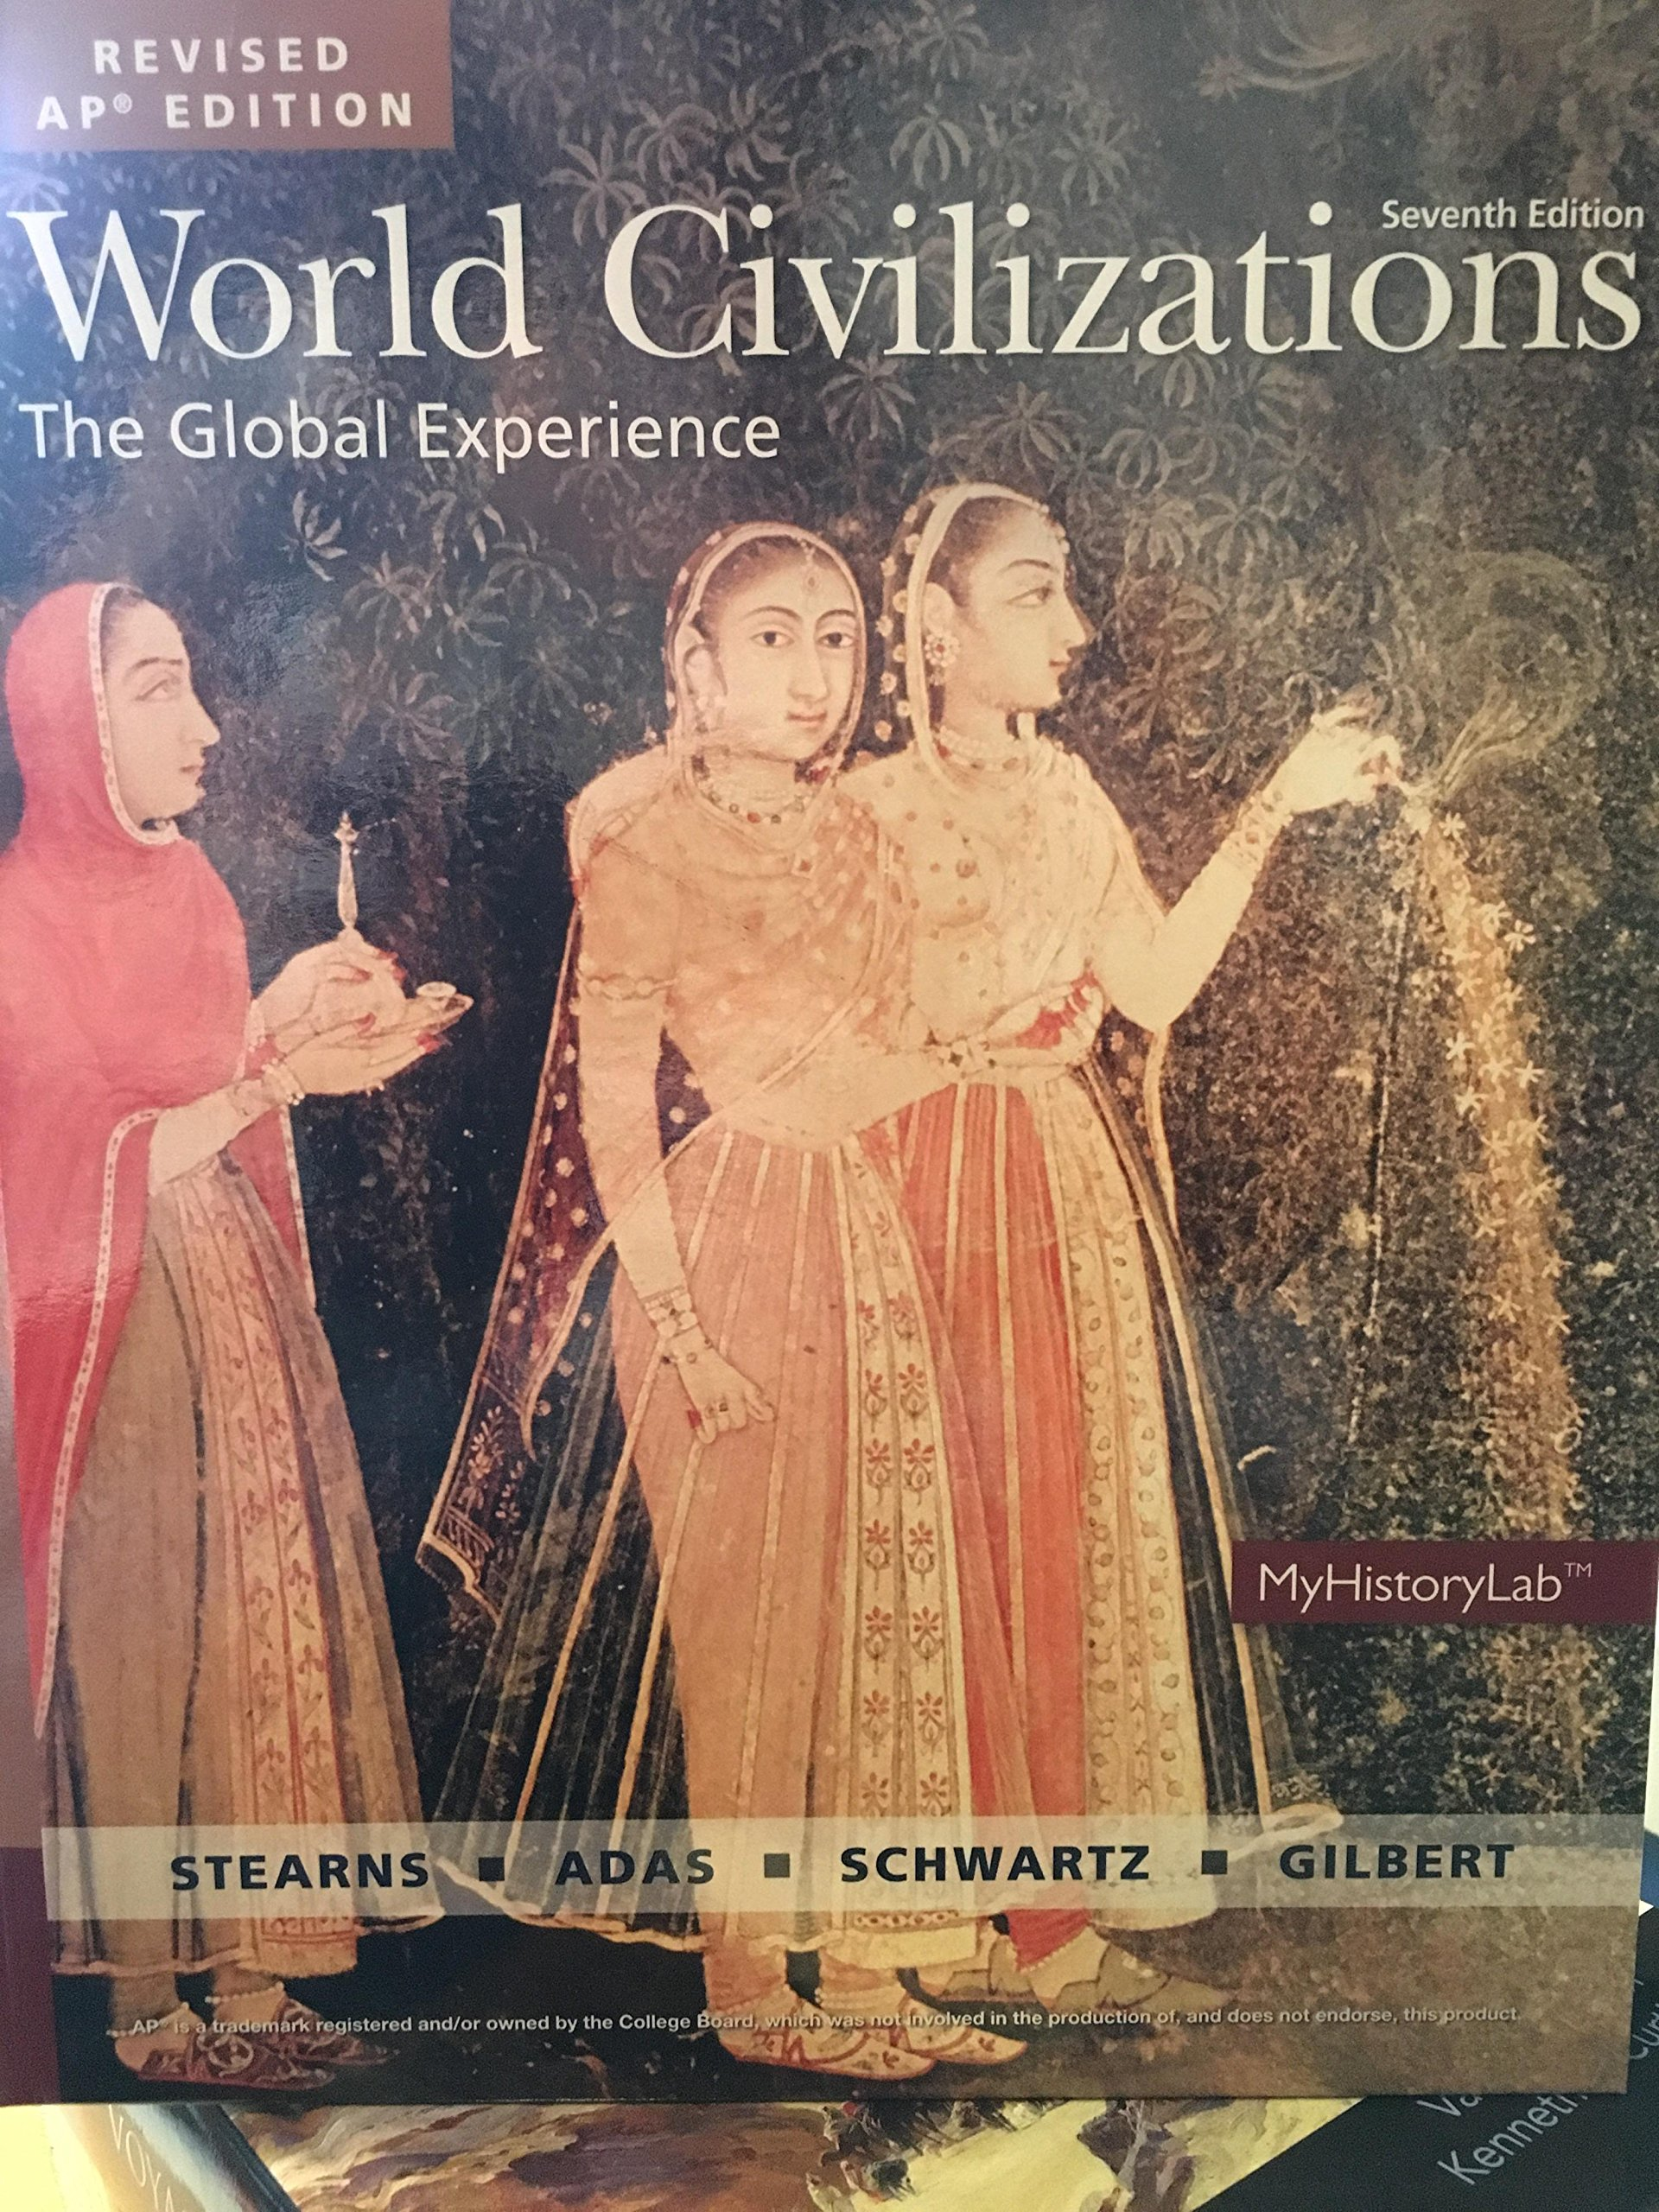 Download World Civilizations: The Global Experience, Revised AP Edition pdf epub